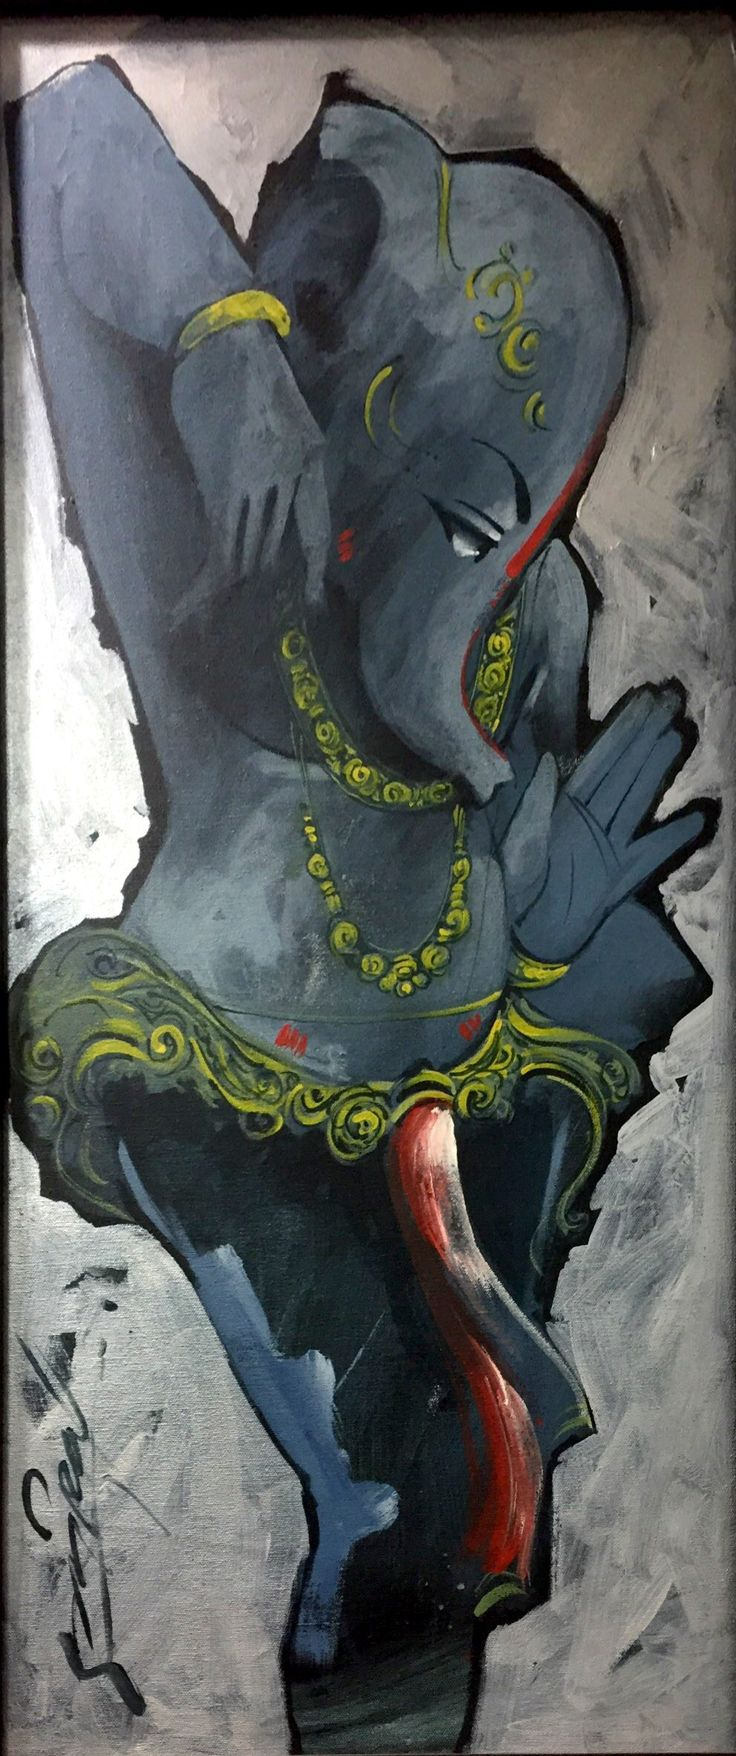 Buy modern and contemporary art, prints, & photographs from the indian best artists in any budget. TARUN ART GALLERY is the leading online art marketplace.